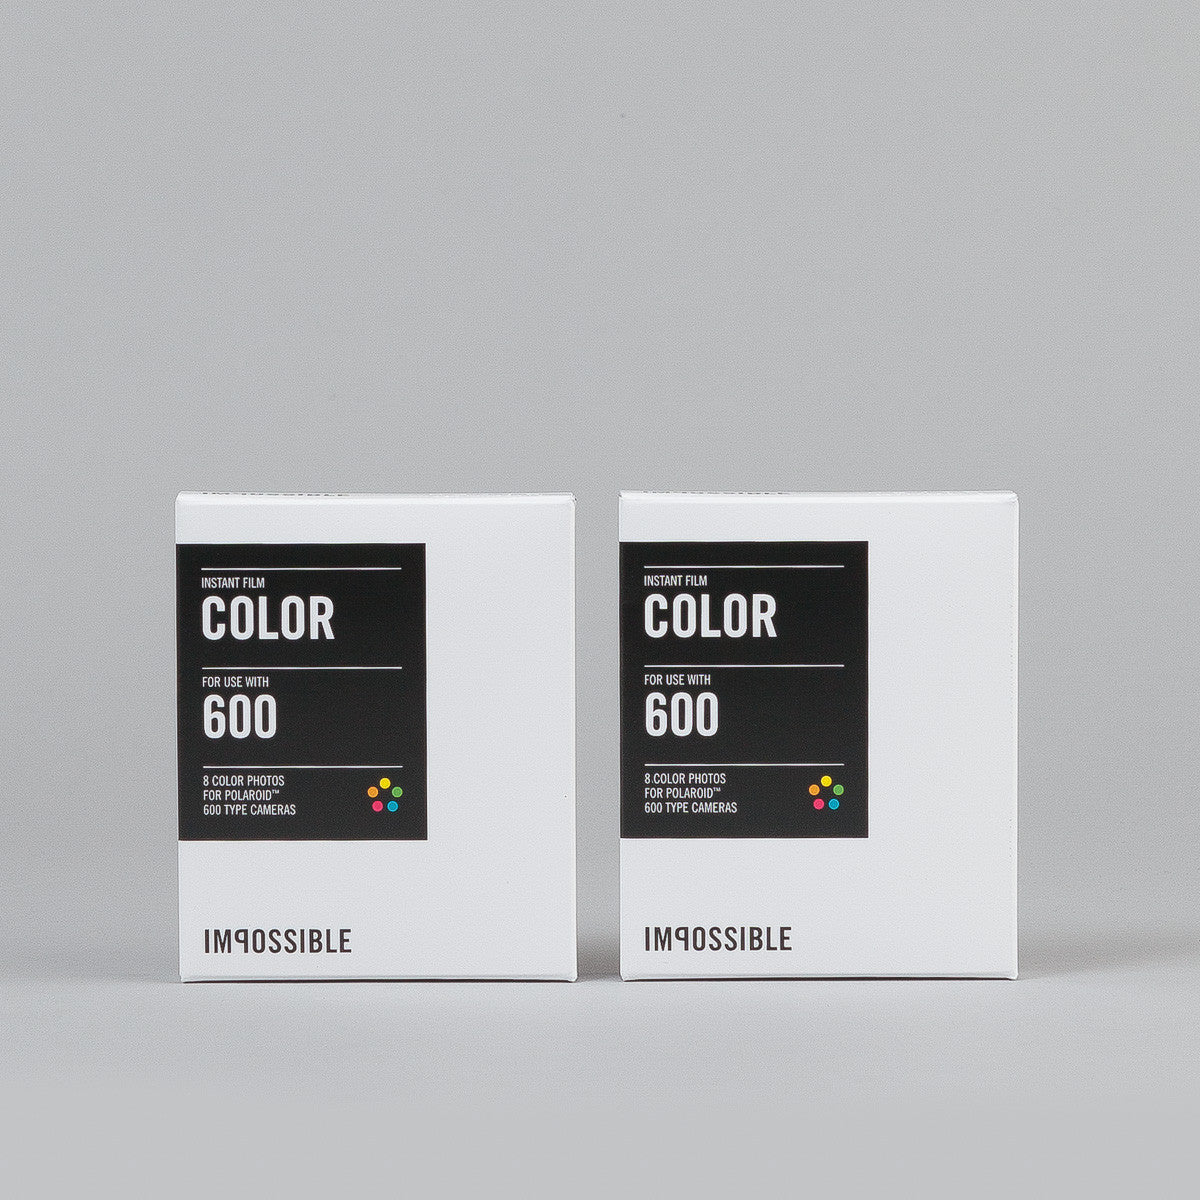 Impossible Refurbished Polaroid 600 Impulse Camera Kit